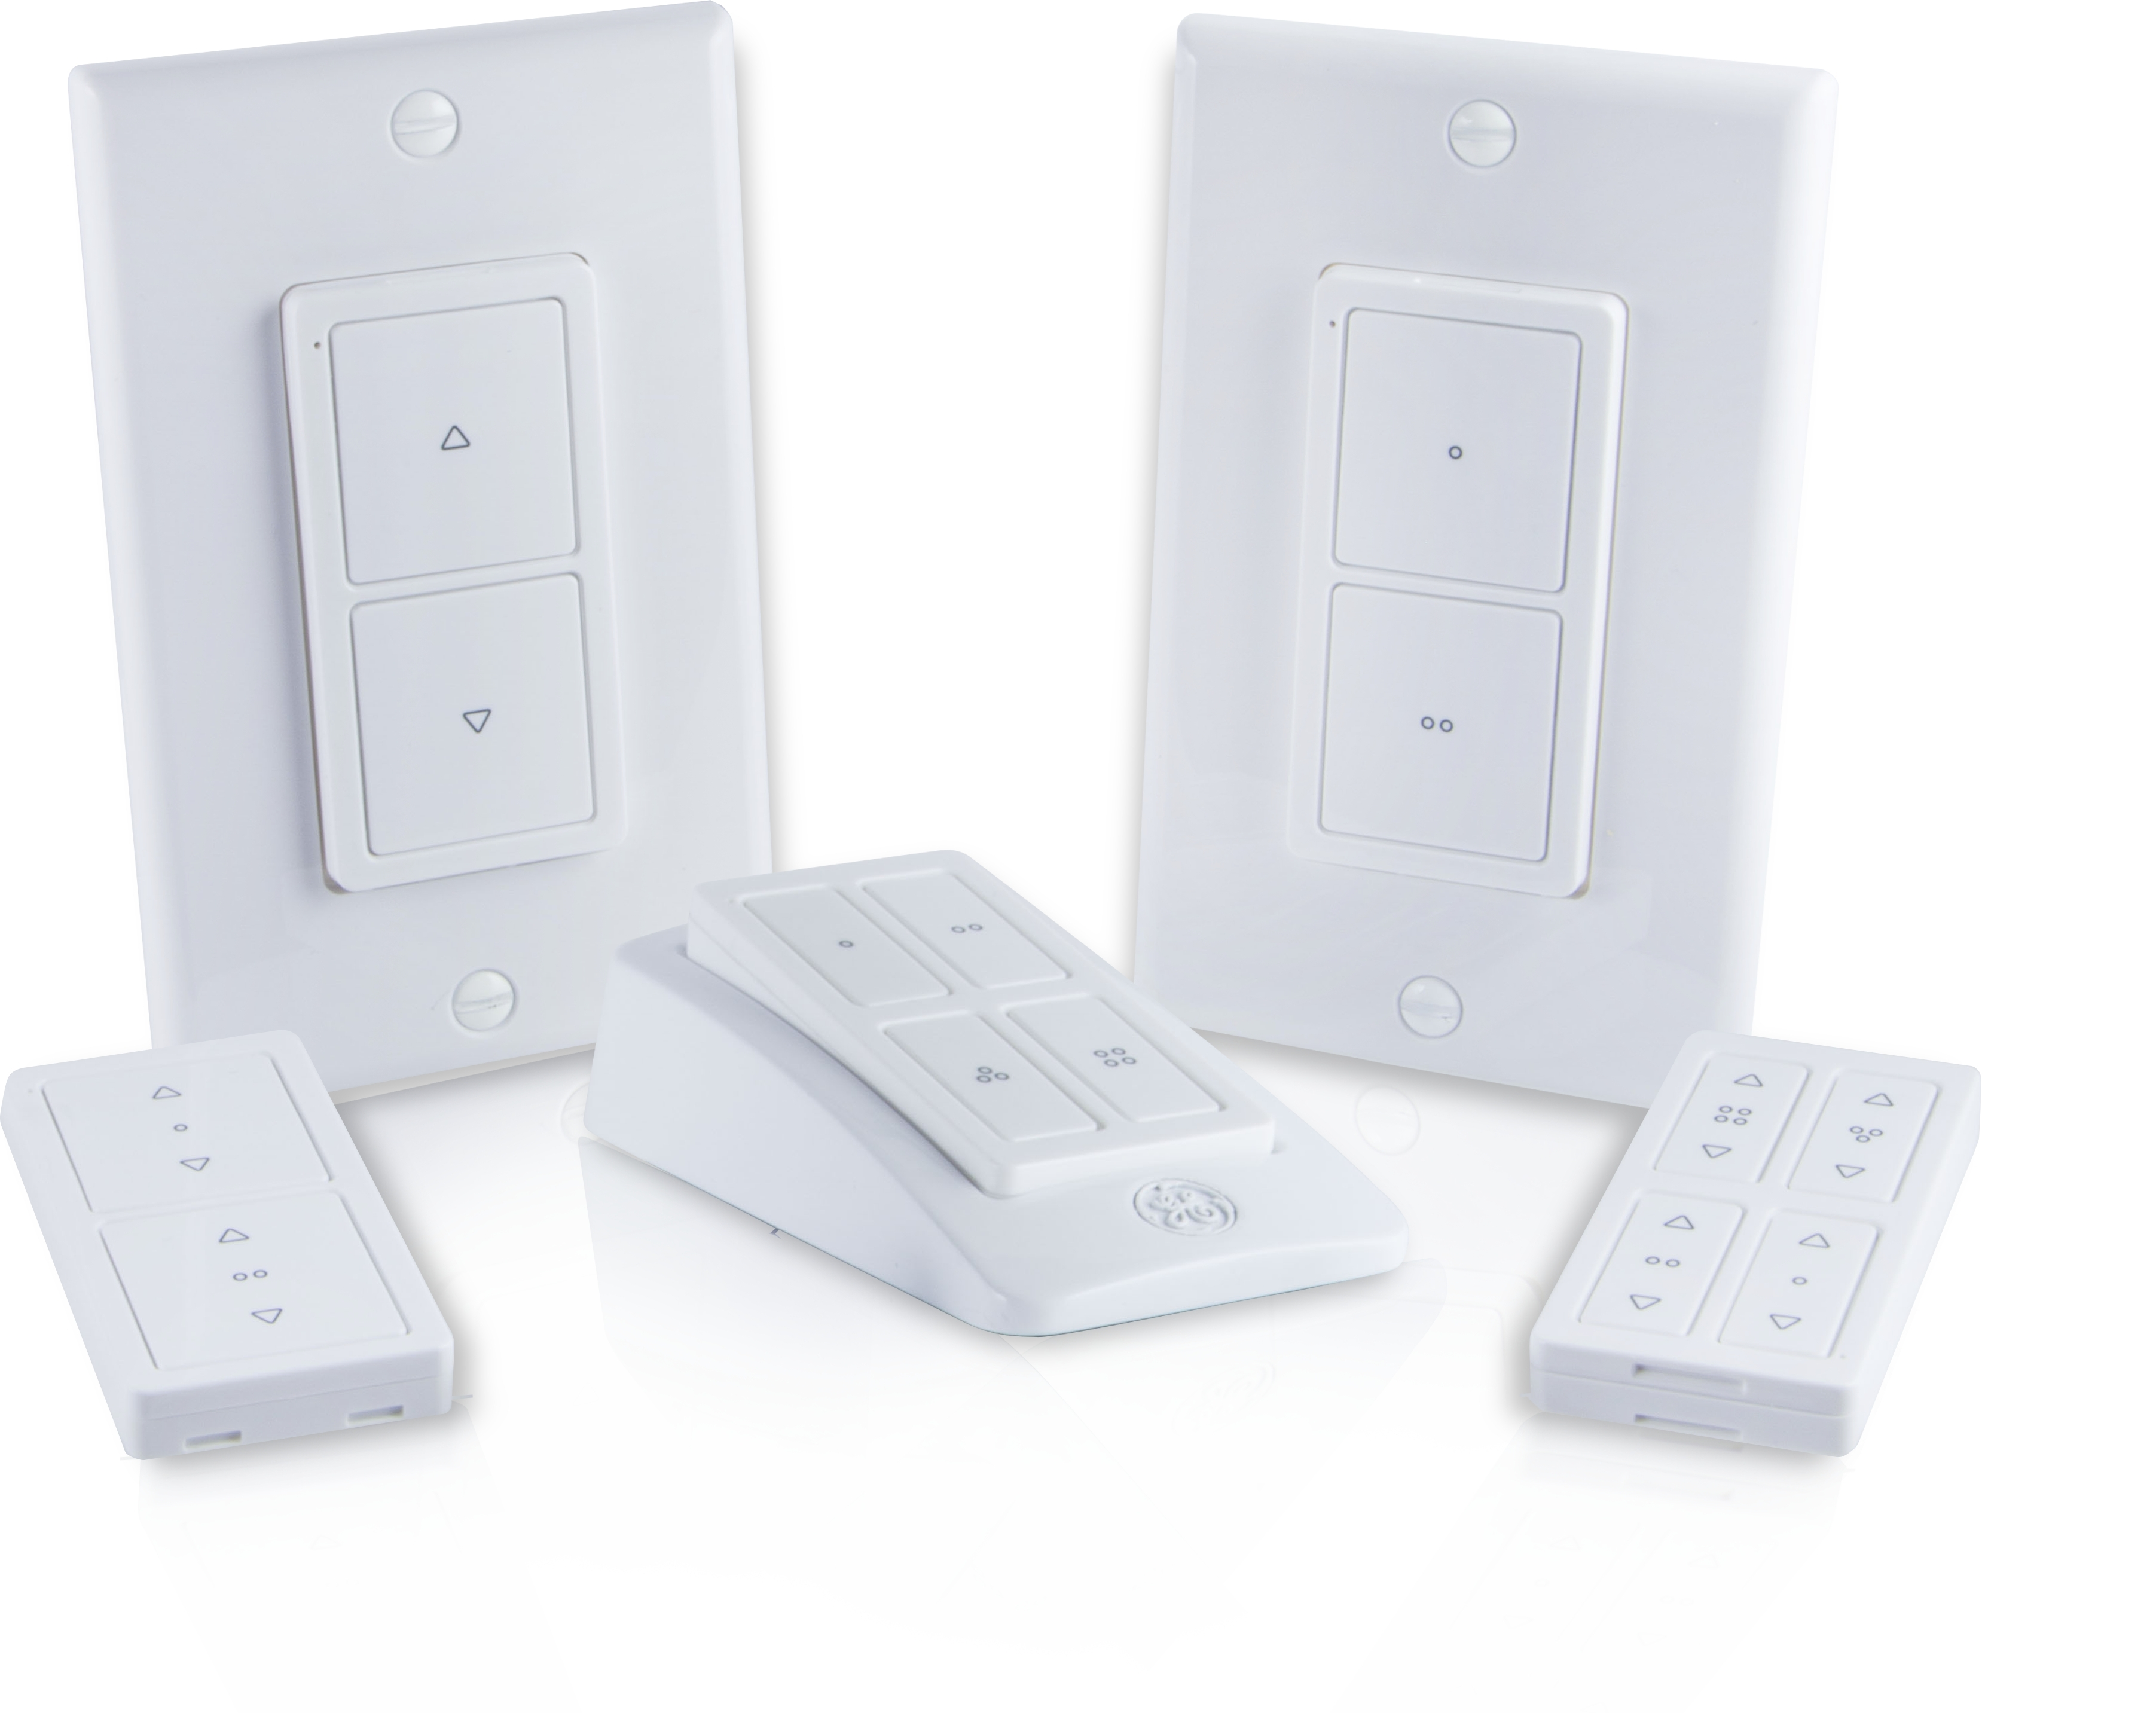 ge 45631 wave wireless lighting. jasco introduces five new ge branded zwave wireless smart remotes at ces 2017 business wire ge 45631 wave lighting w